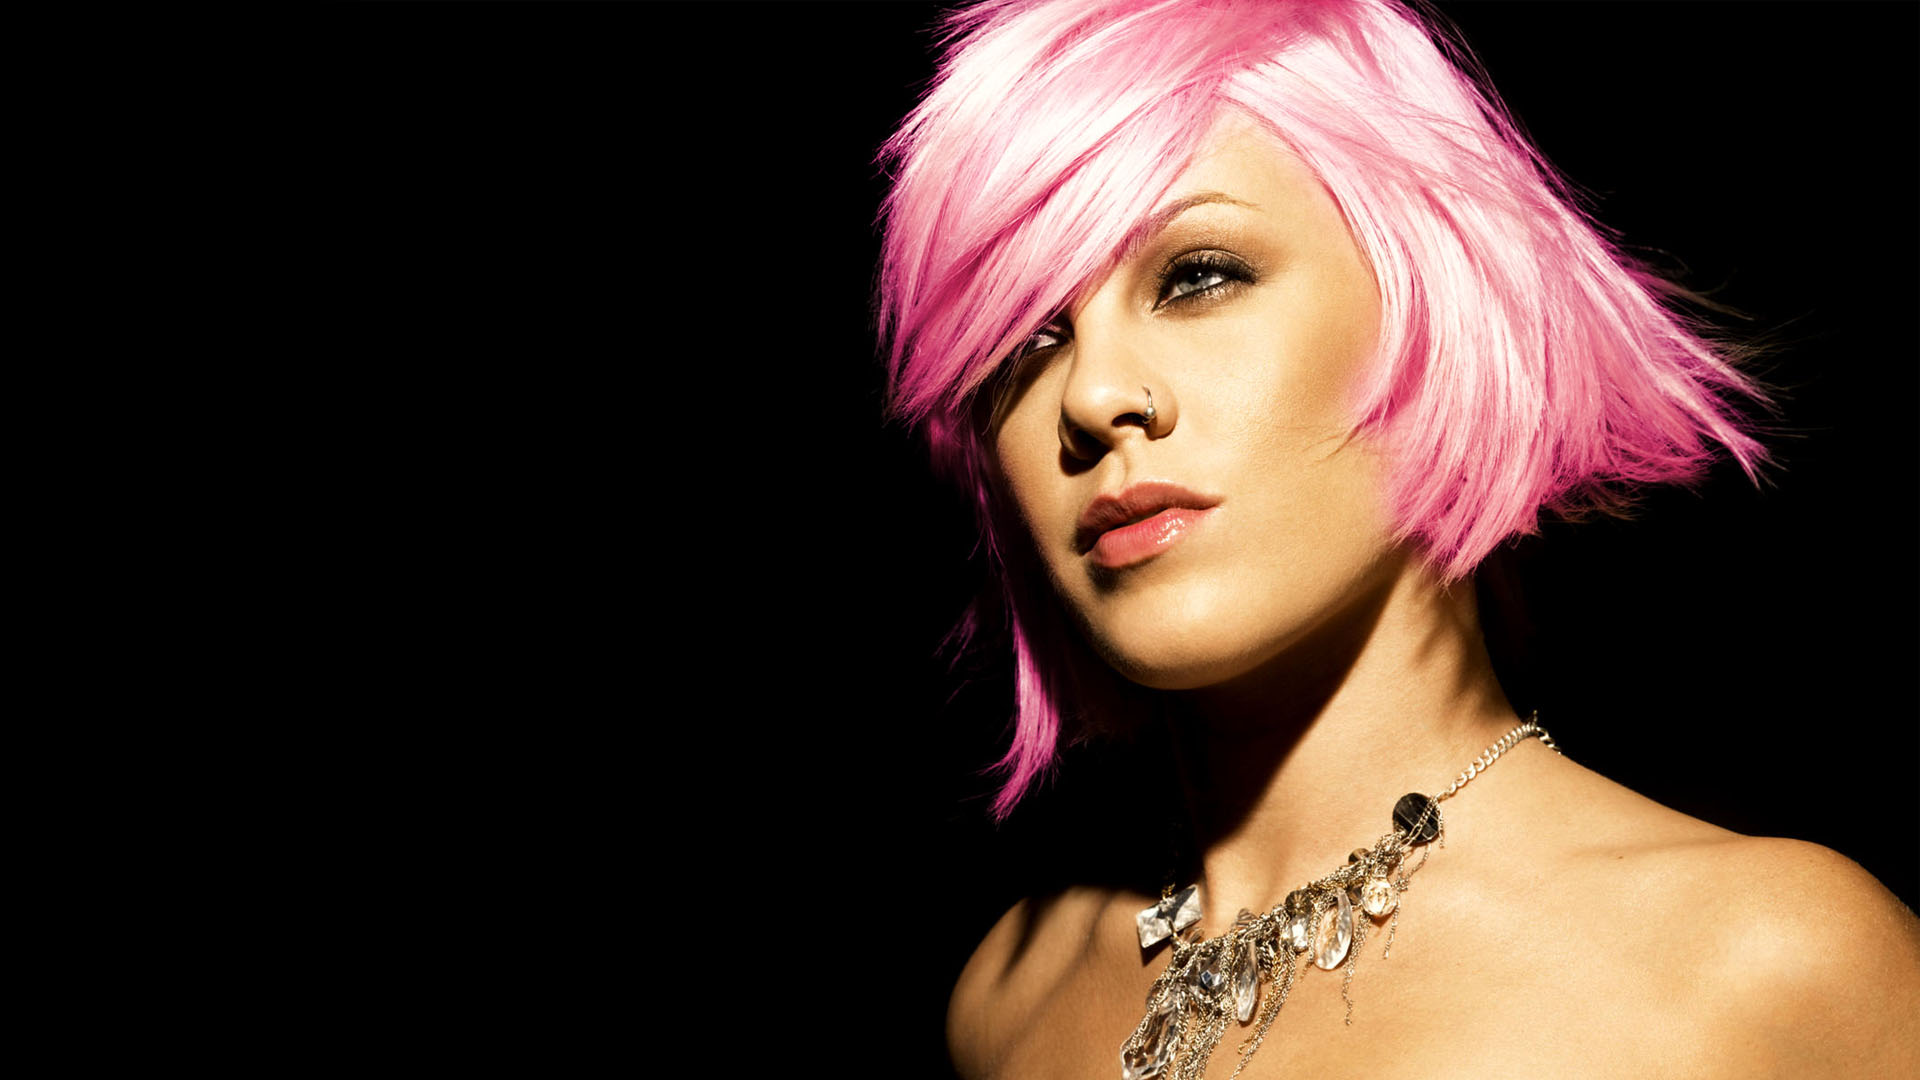 Just Like Fire av P!Nk